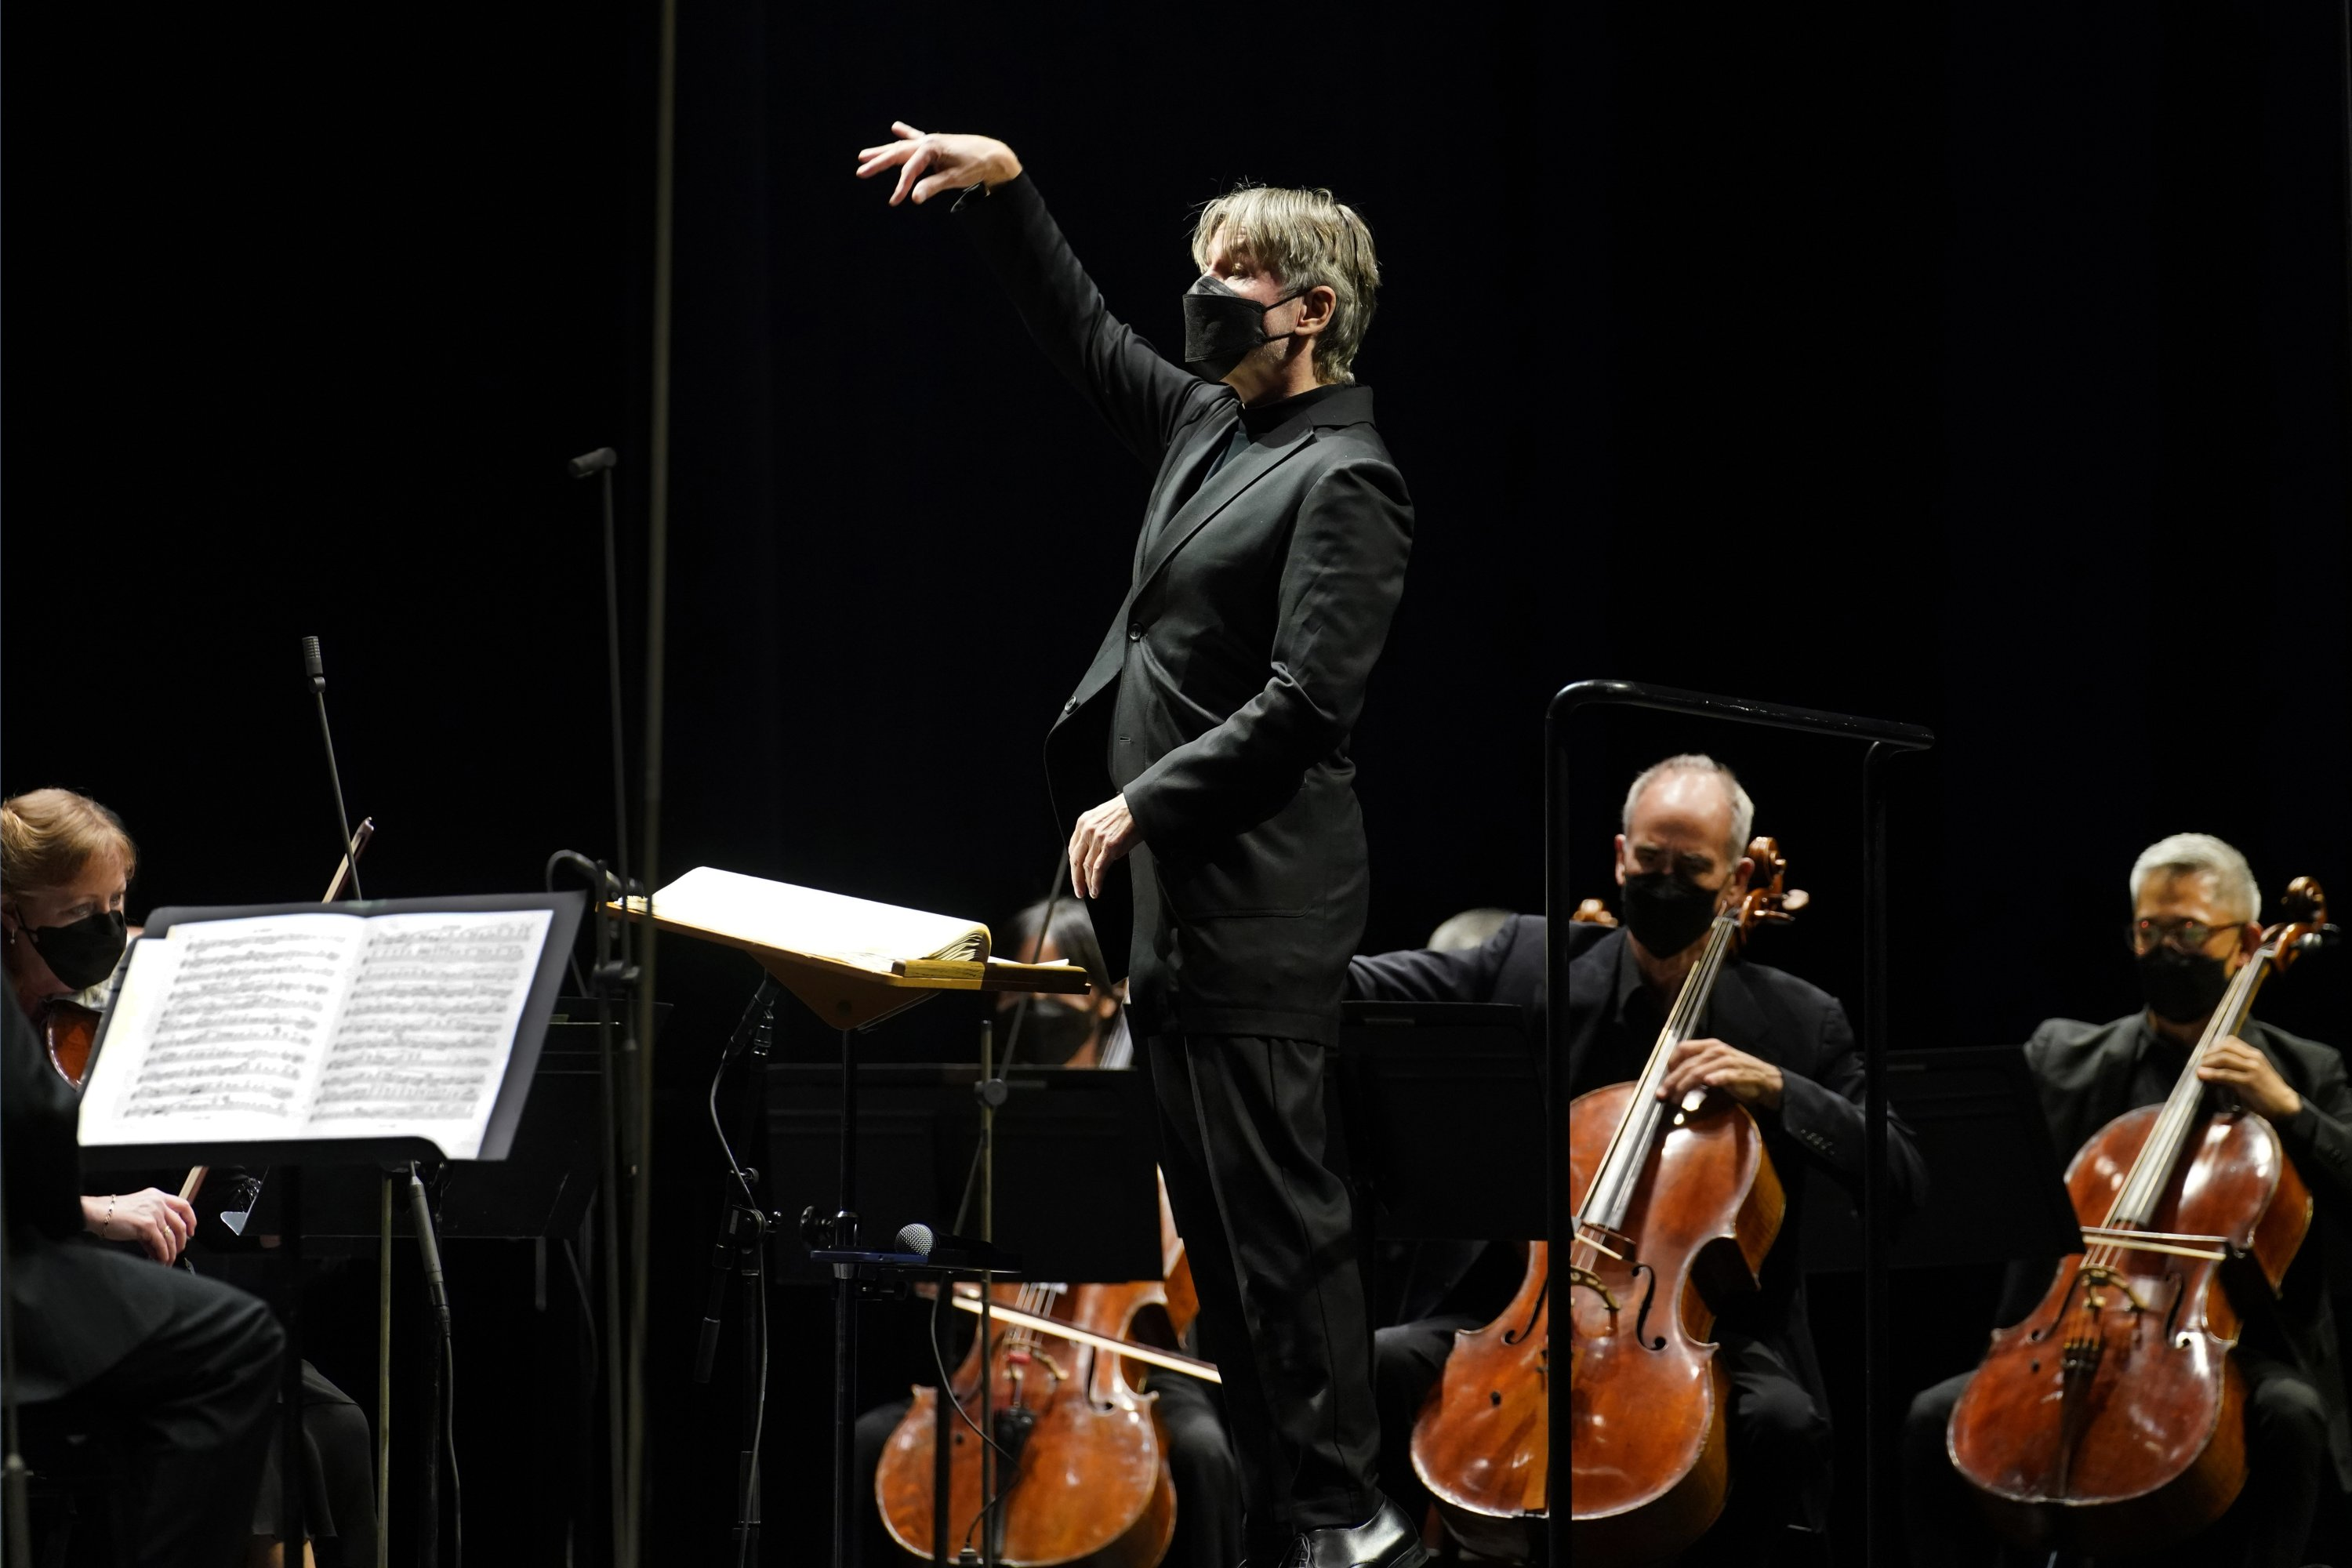 Guest conductor Essa-Pekka Salonen leads the New York Philharmonic as the orchestra performs before a live audience of 150 people for the first time since March at The Shed in Hudson Yards, New York, U.S., Wednesday, April 14, 2021. (AP Photo)